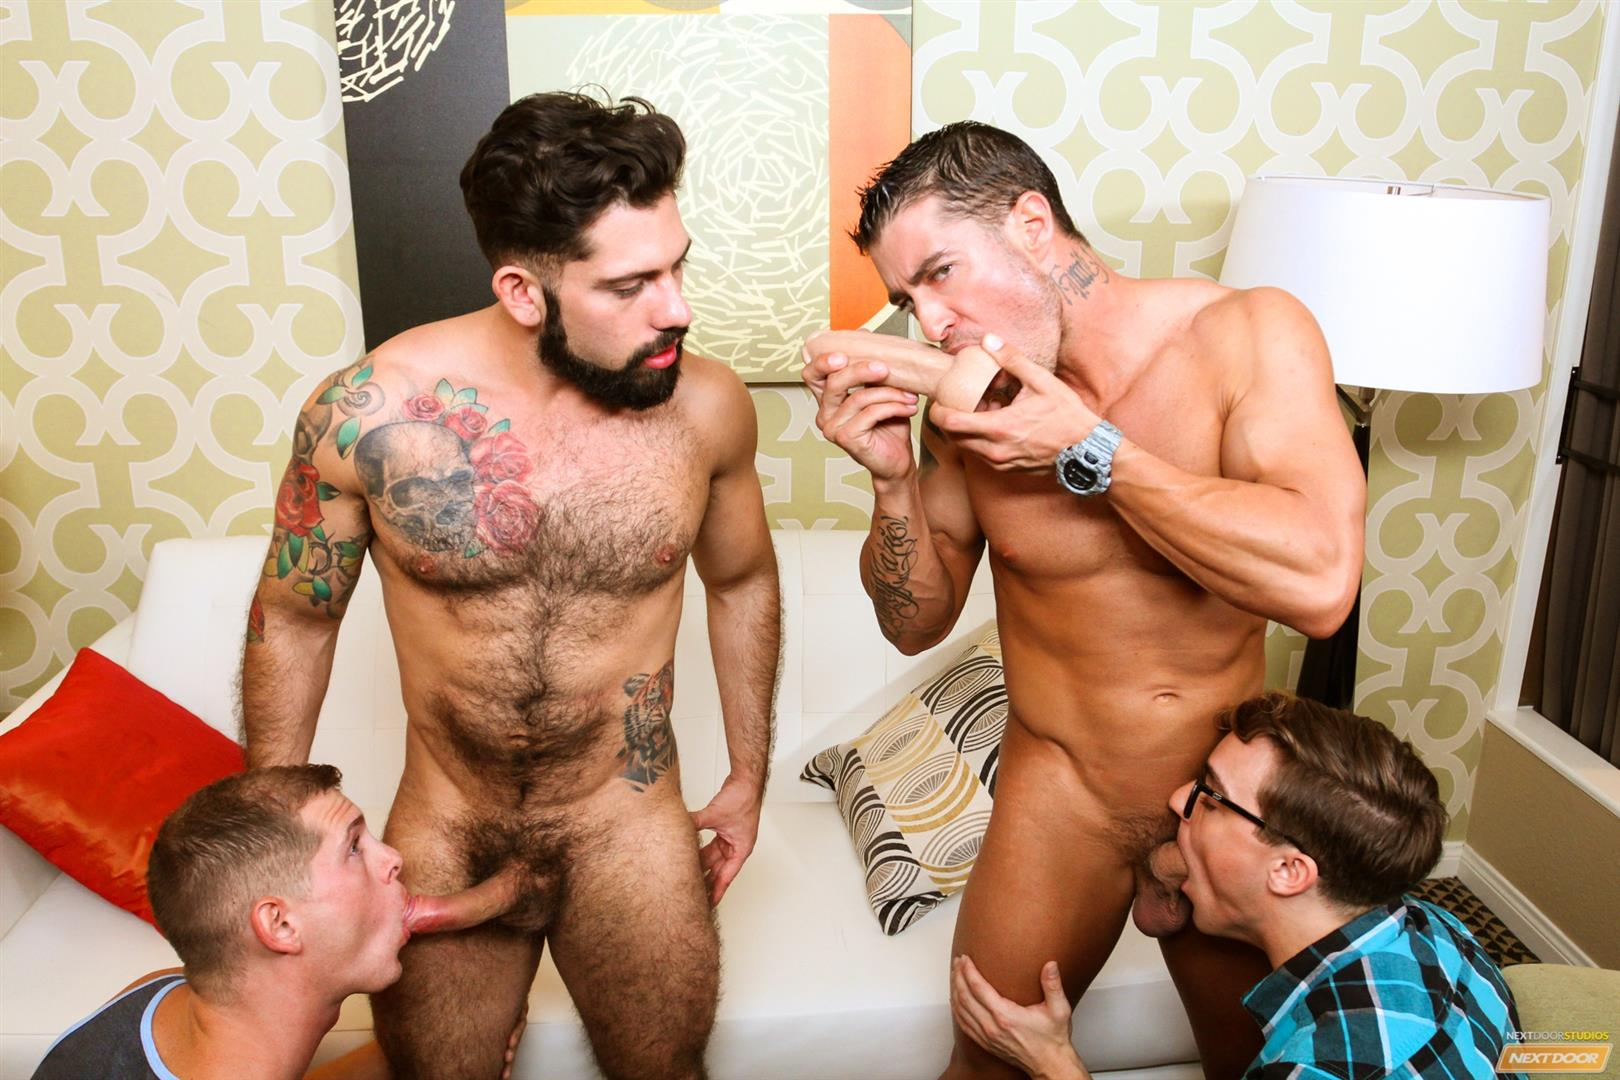 Cody Cummings and Tyler Morgan and Alessandro Del Torro Cock Sucking Lessons Amateur Gay Porn 13 Cody Cummings Gives The Boys Cock Sucking Lessons